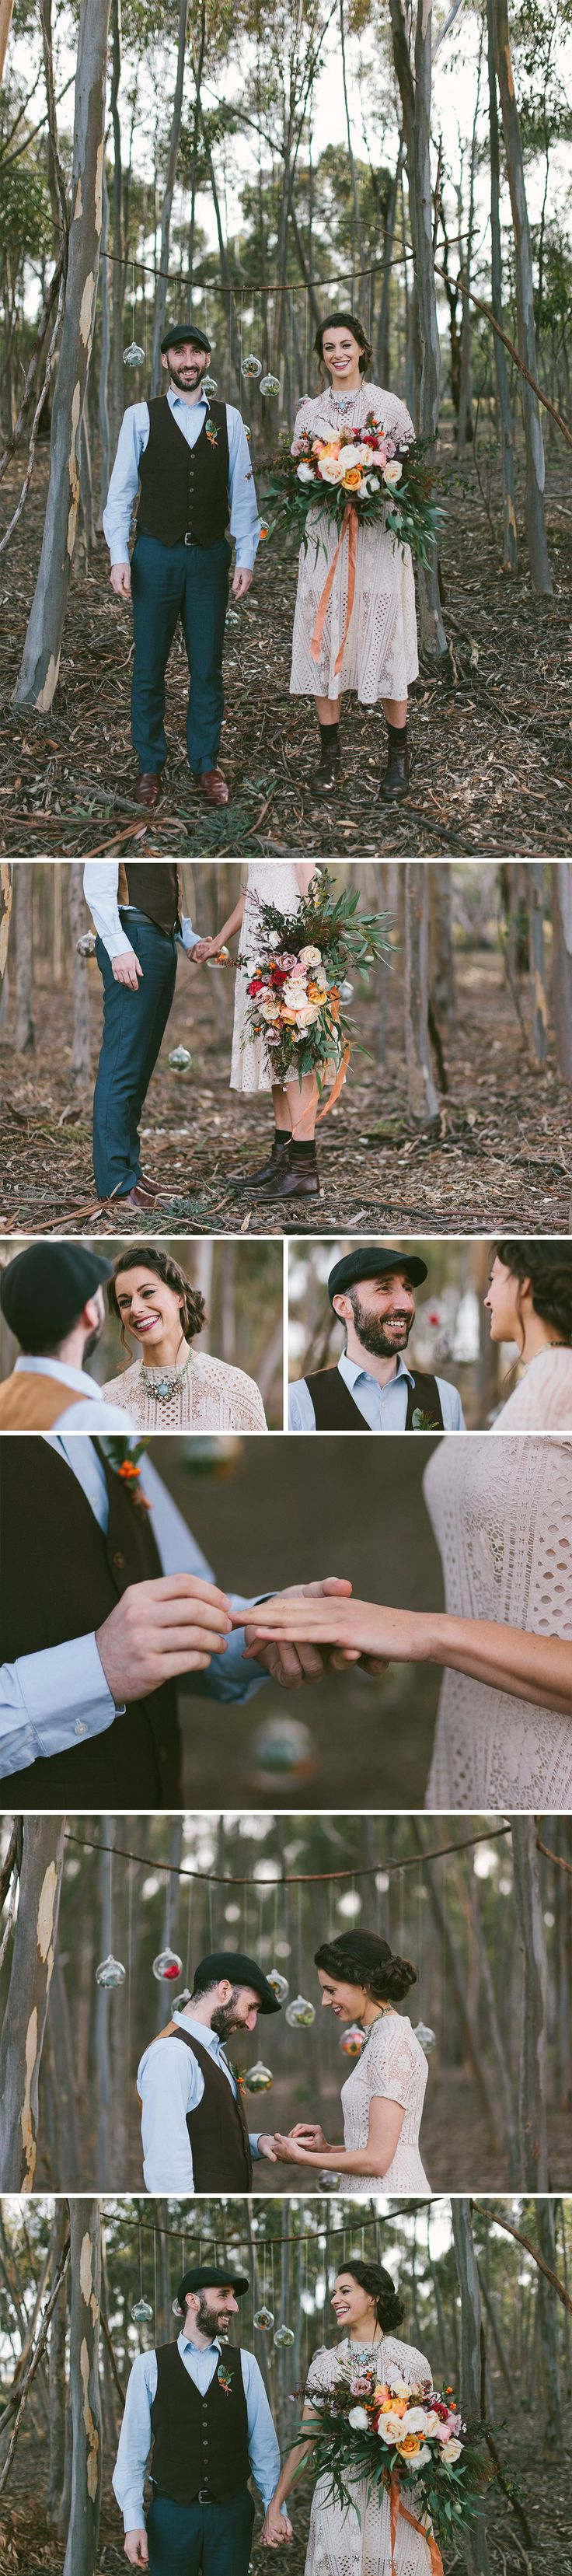 Relaxed bohemian wedding ceremony in the forest. Amazing Wedding bouquet + button holes in a relaxed and quirky wedding setting.